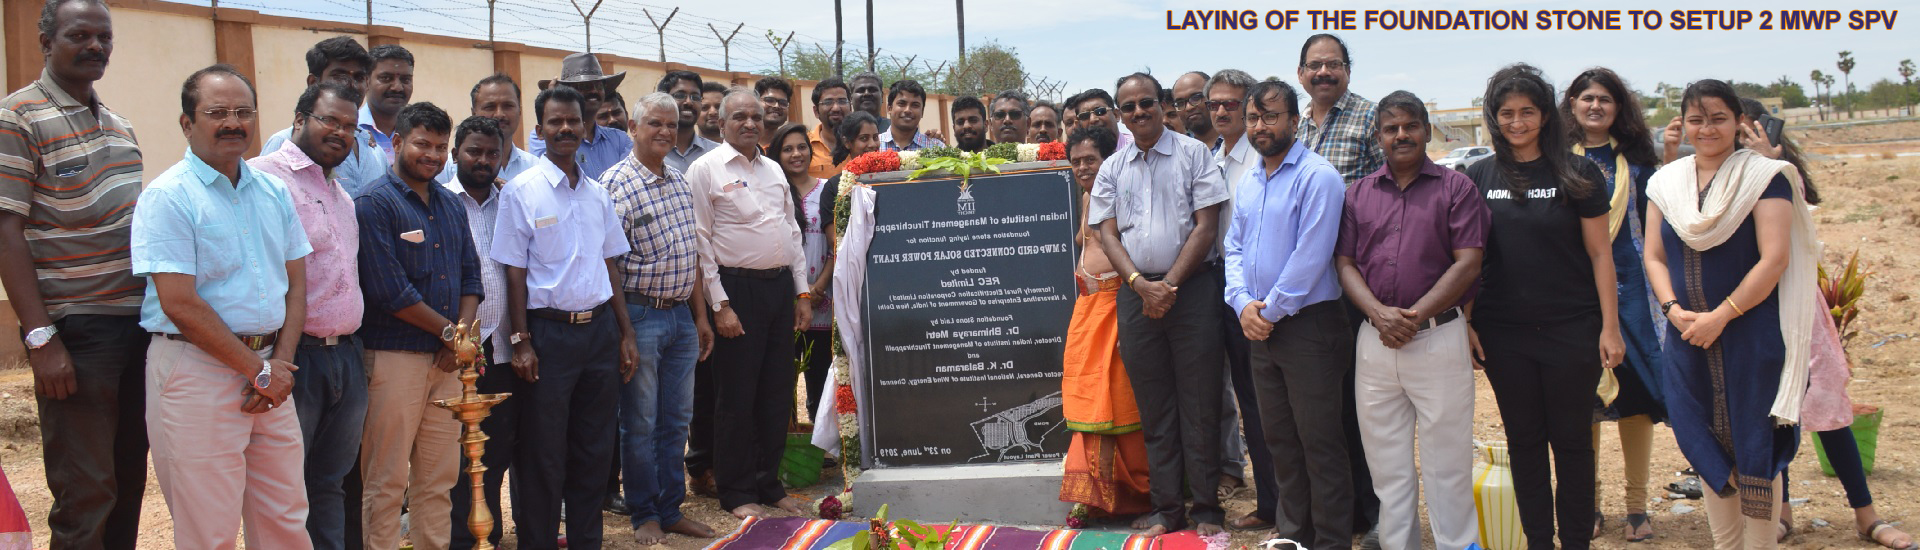 LAYING OF THE FOUNDATION STONE TO SETUP 2 MWP SPV PLANT